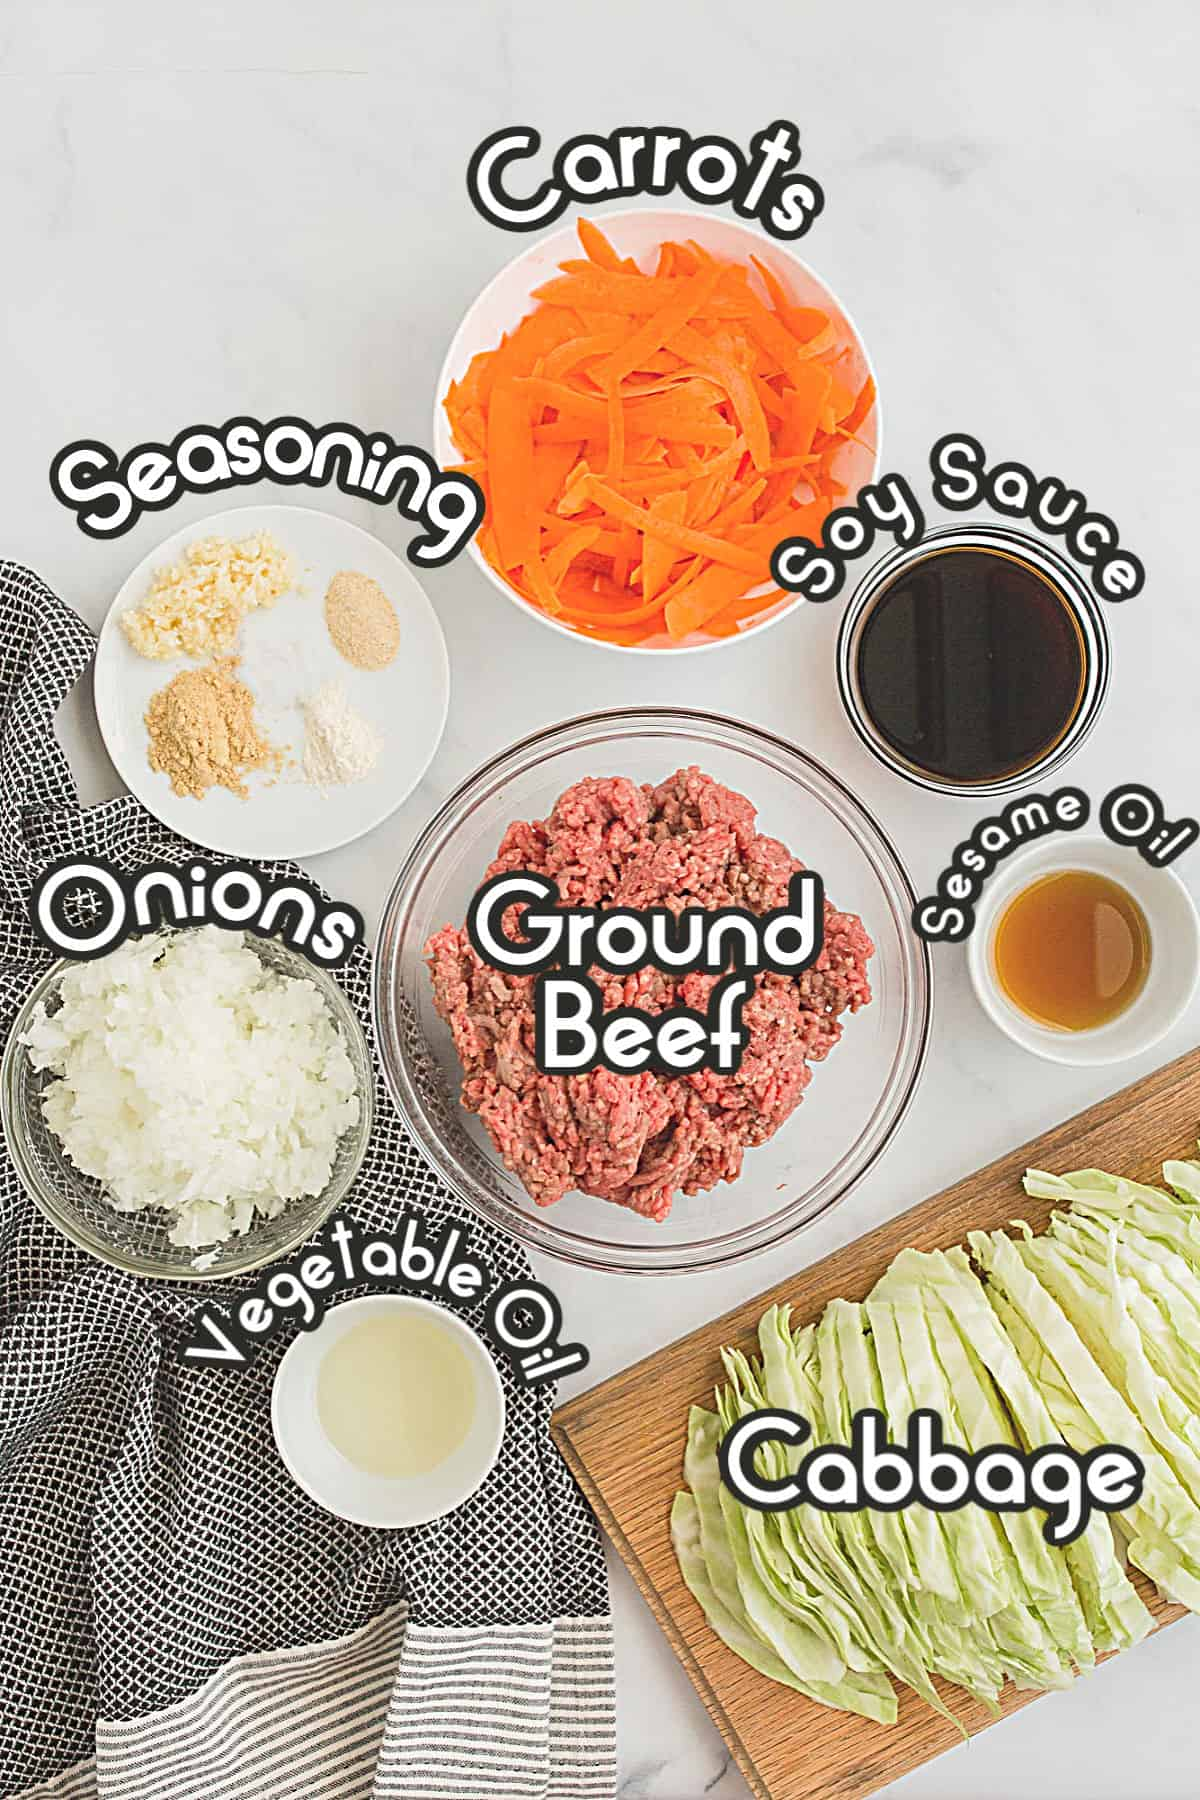 Ingredients to make an egg roll deconstructed in a bowl